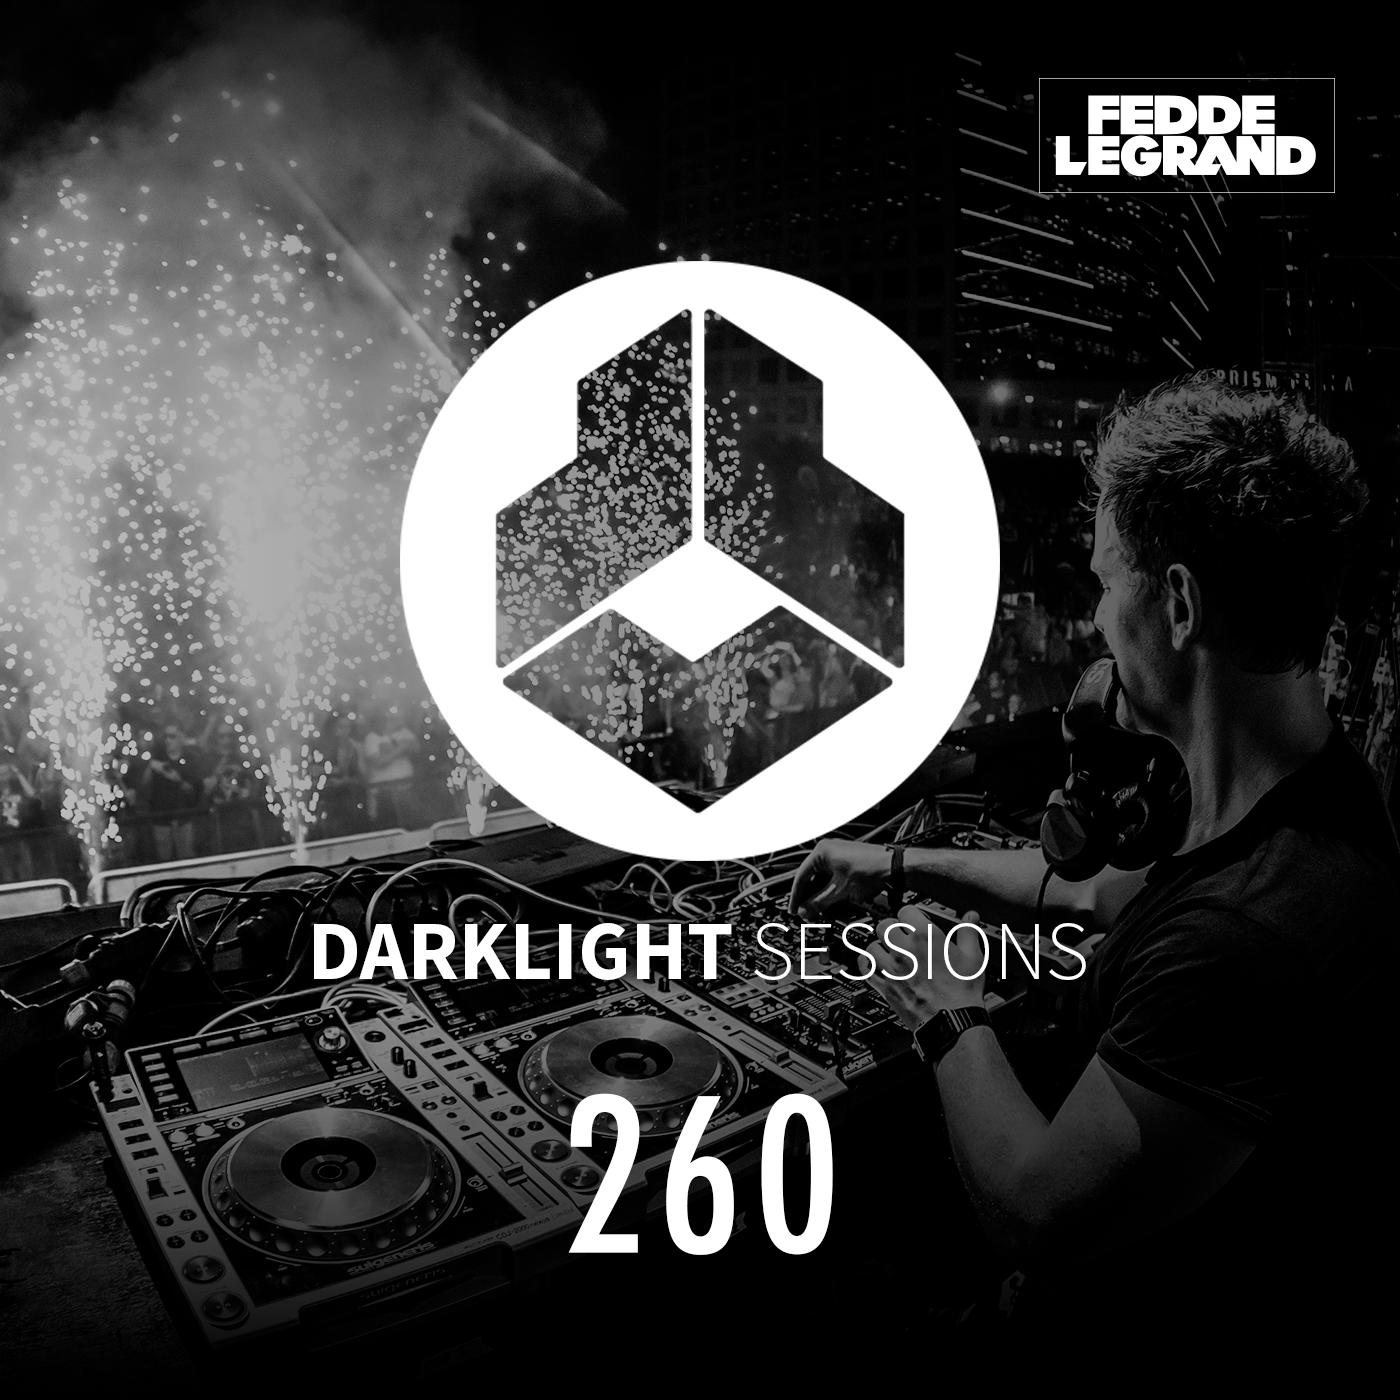 Darklight Sessions 260 (Summer Special)